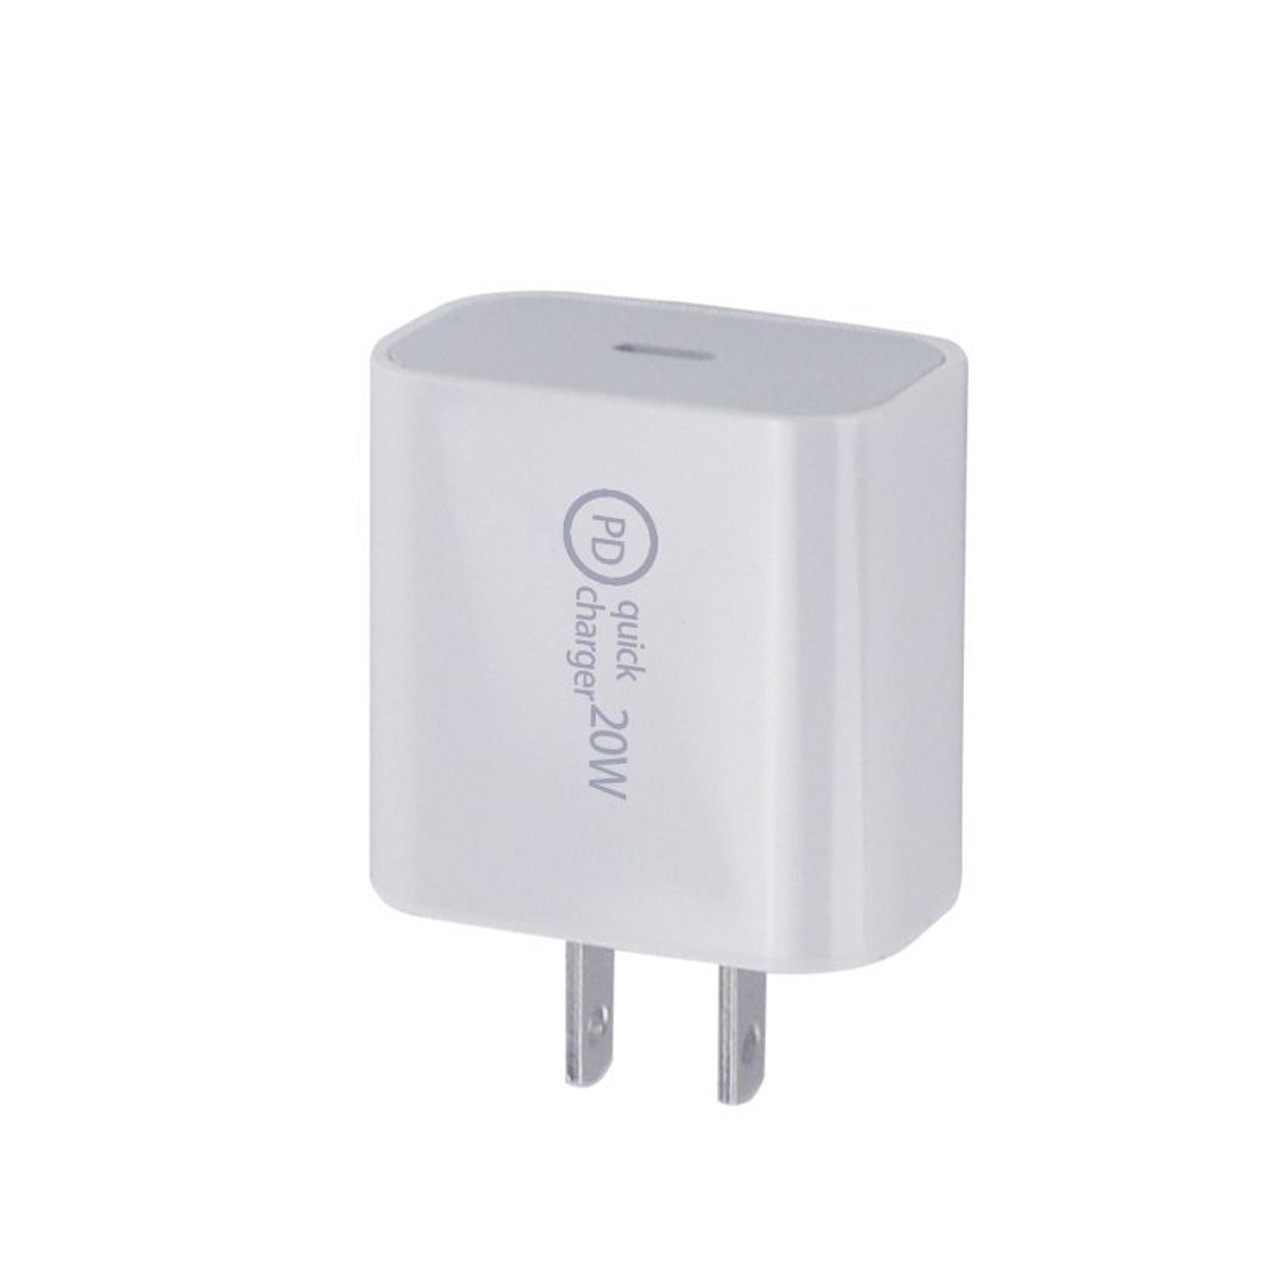 Fast Charger USB-C Wall Adapter & USB-C Cable - 2 Pack